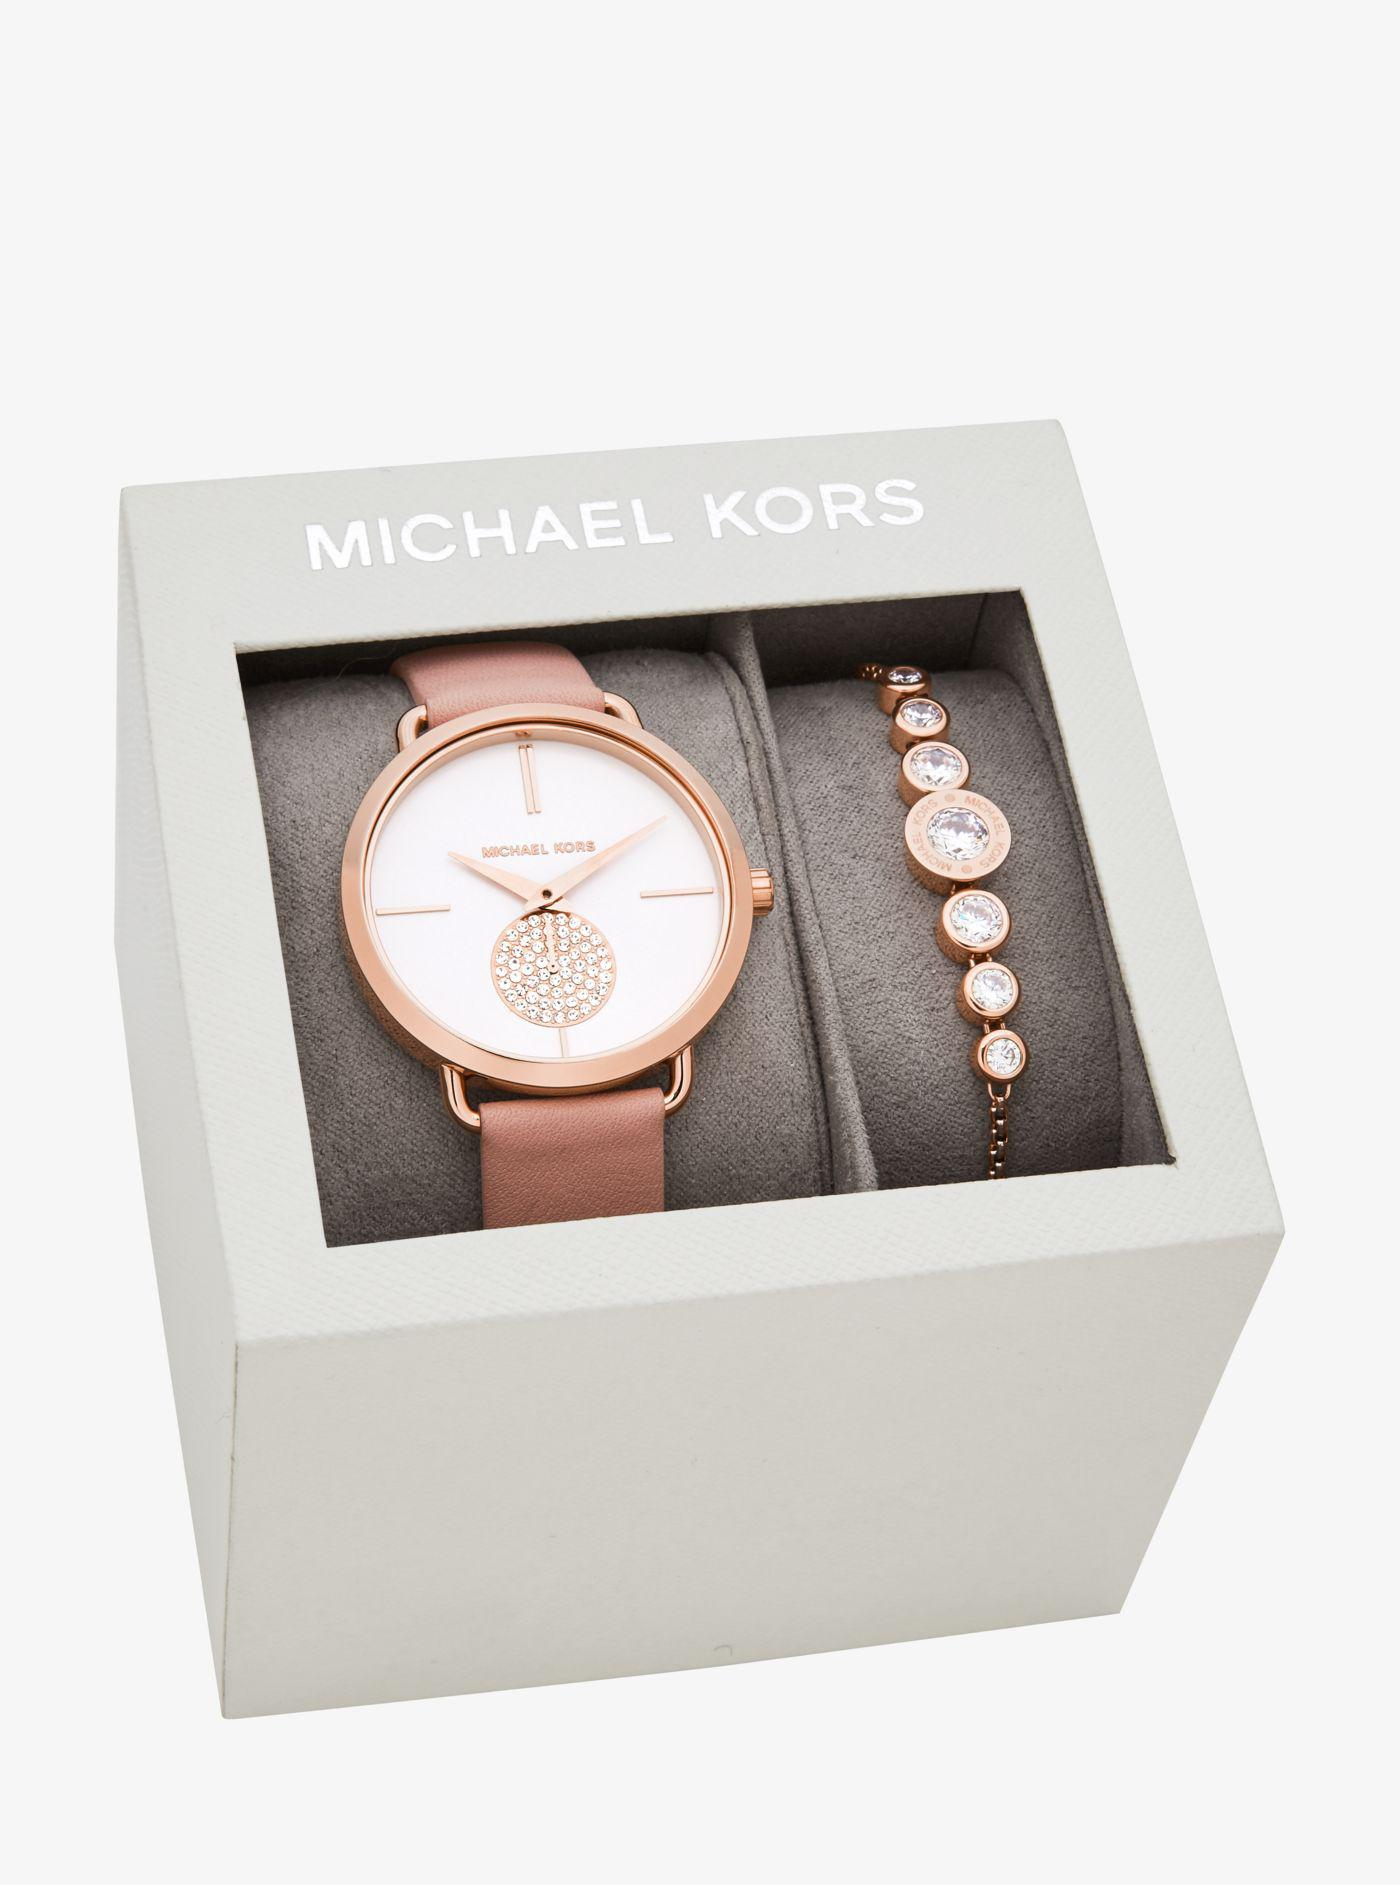 4360b1c758e9 Michael Kors Watch And Bracelet Set Silver Image Of. Michael Kors Women S Jaryn  Rose Gold Tone Stainless Steel Bracelet Watch